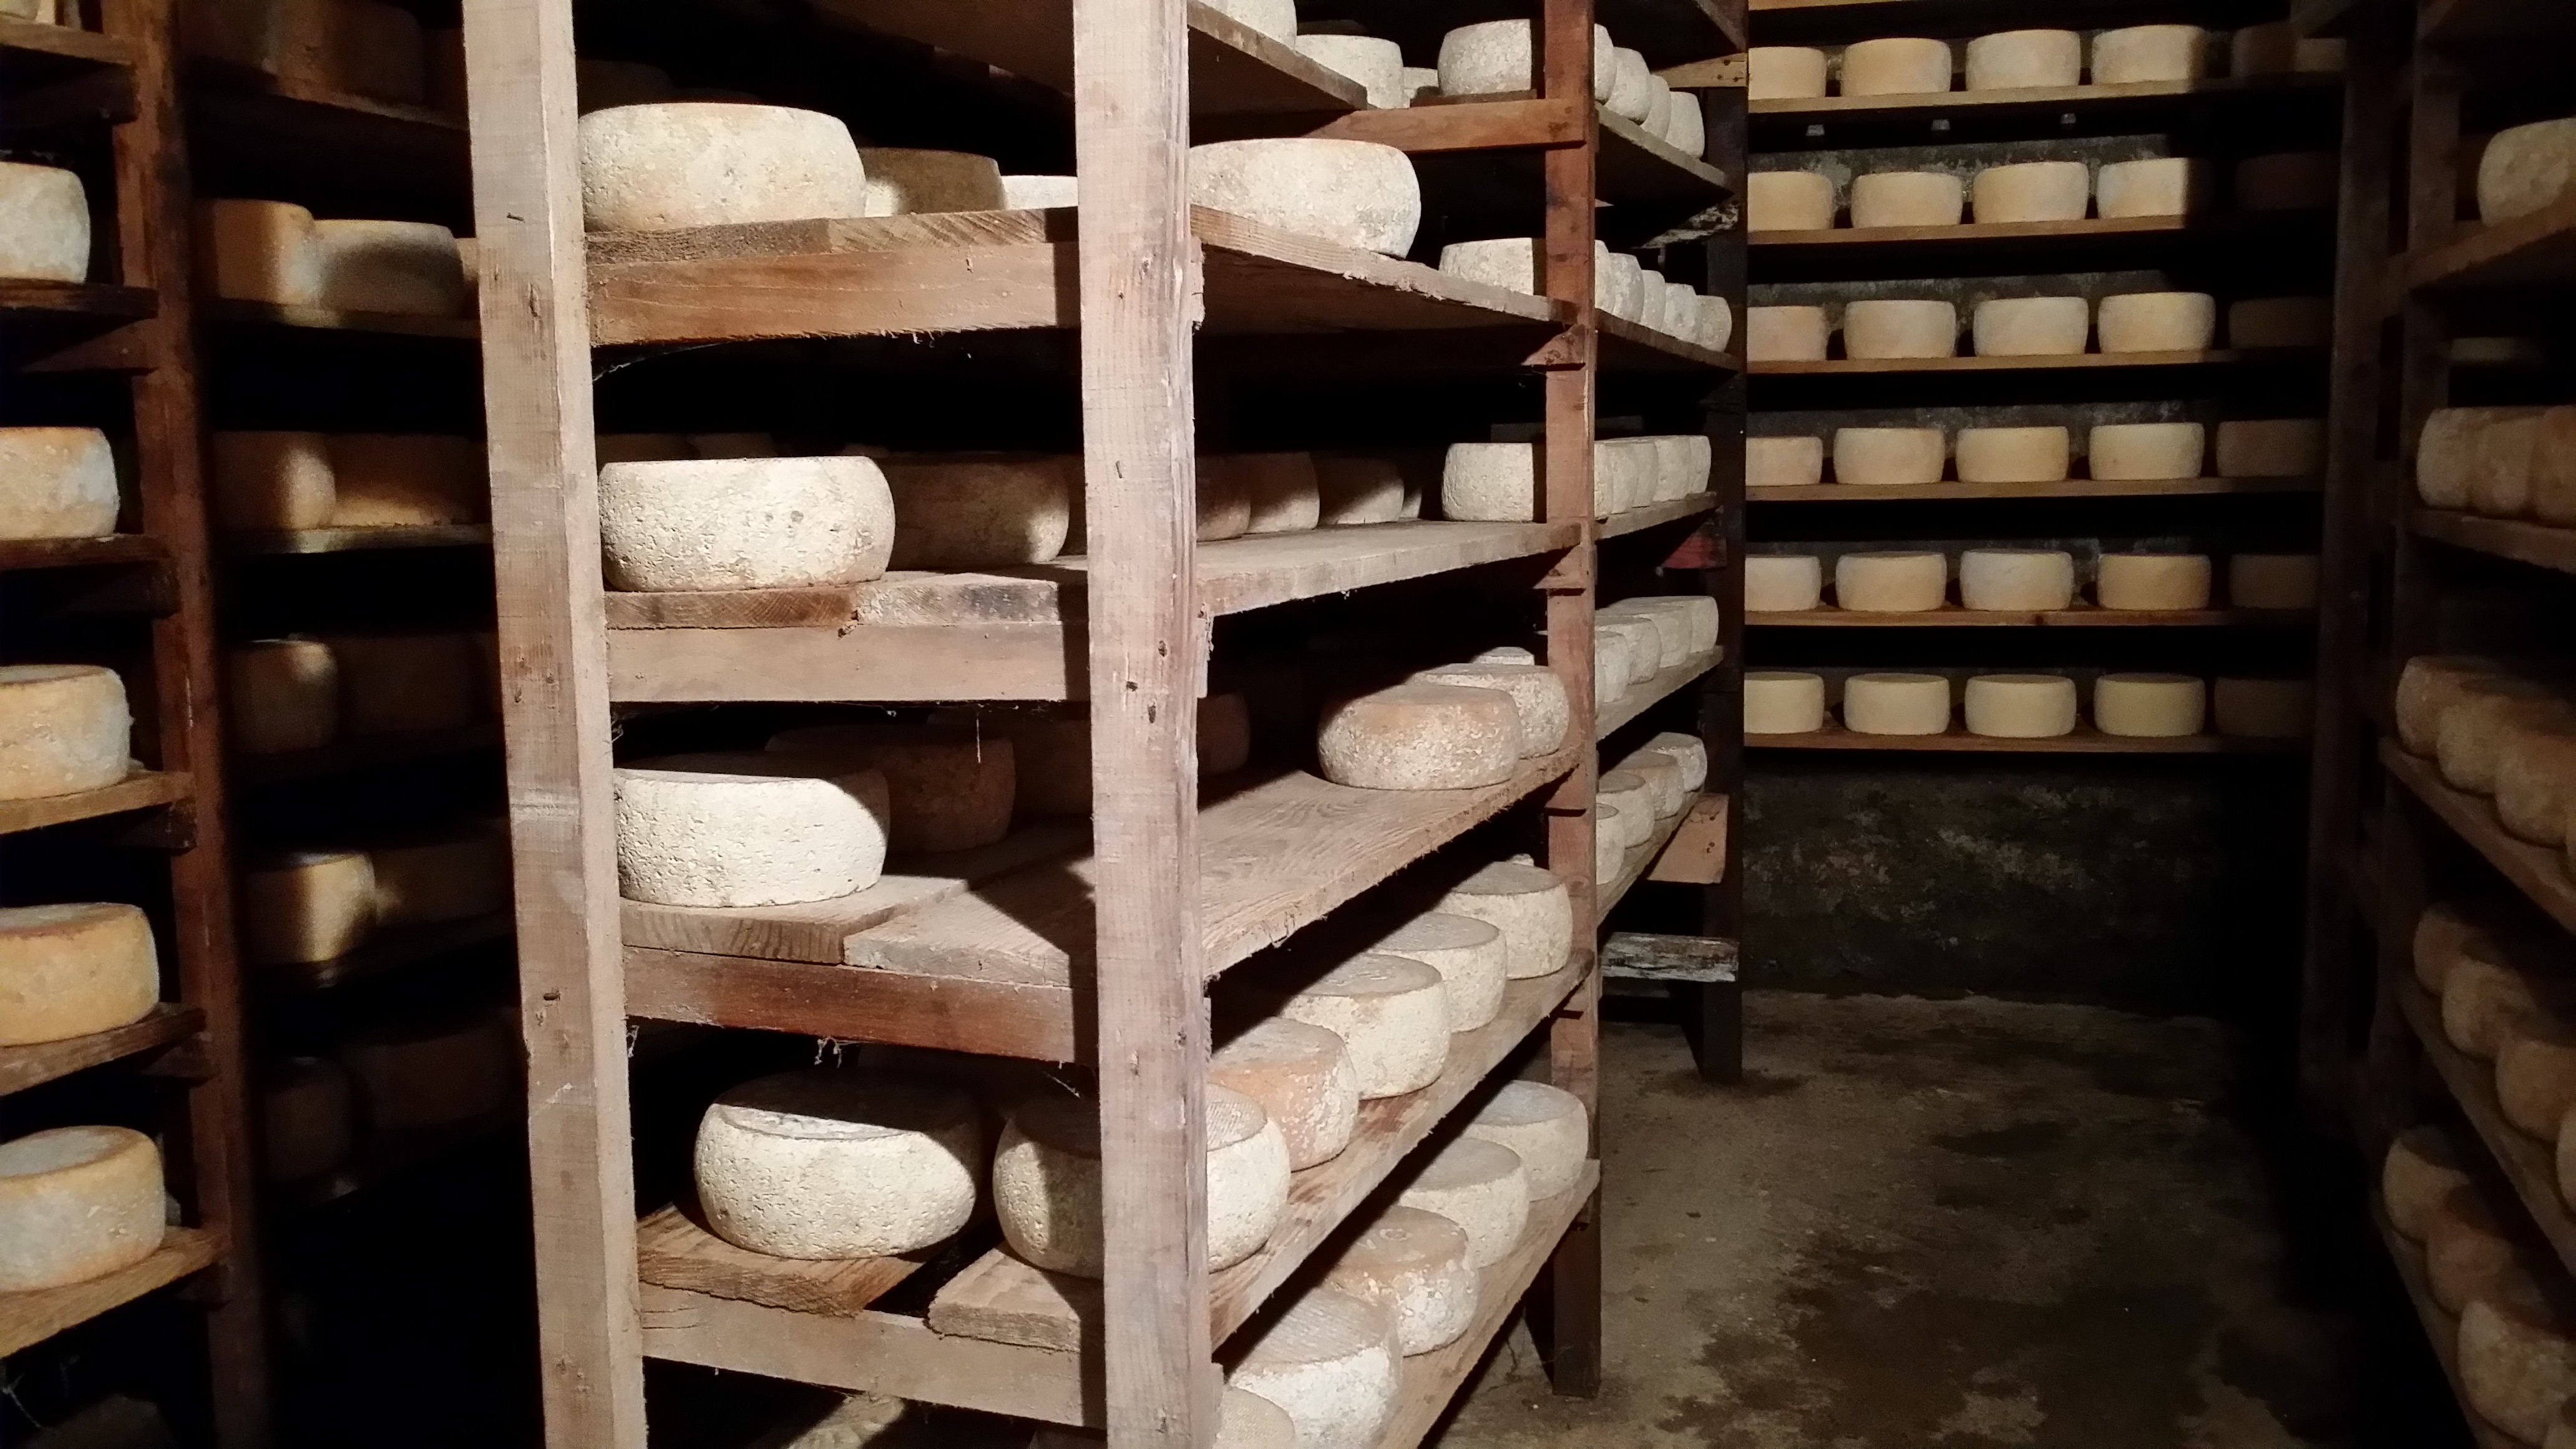 fromage_pyrenees_tomme_luchon_fromagerie_poubeau